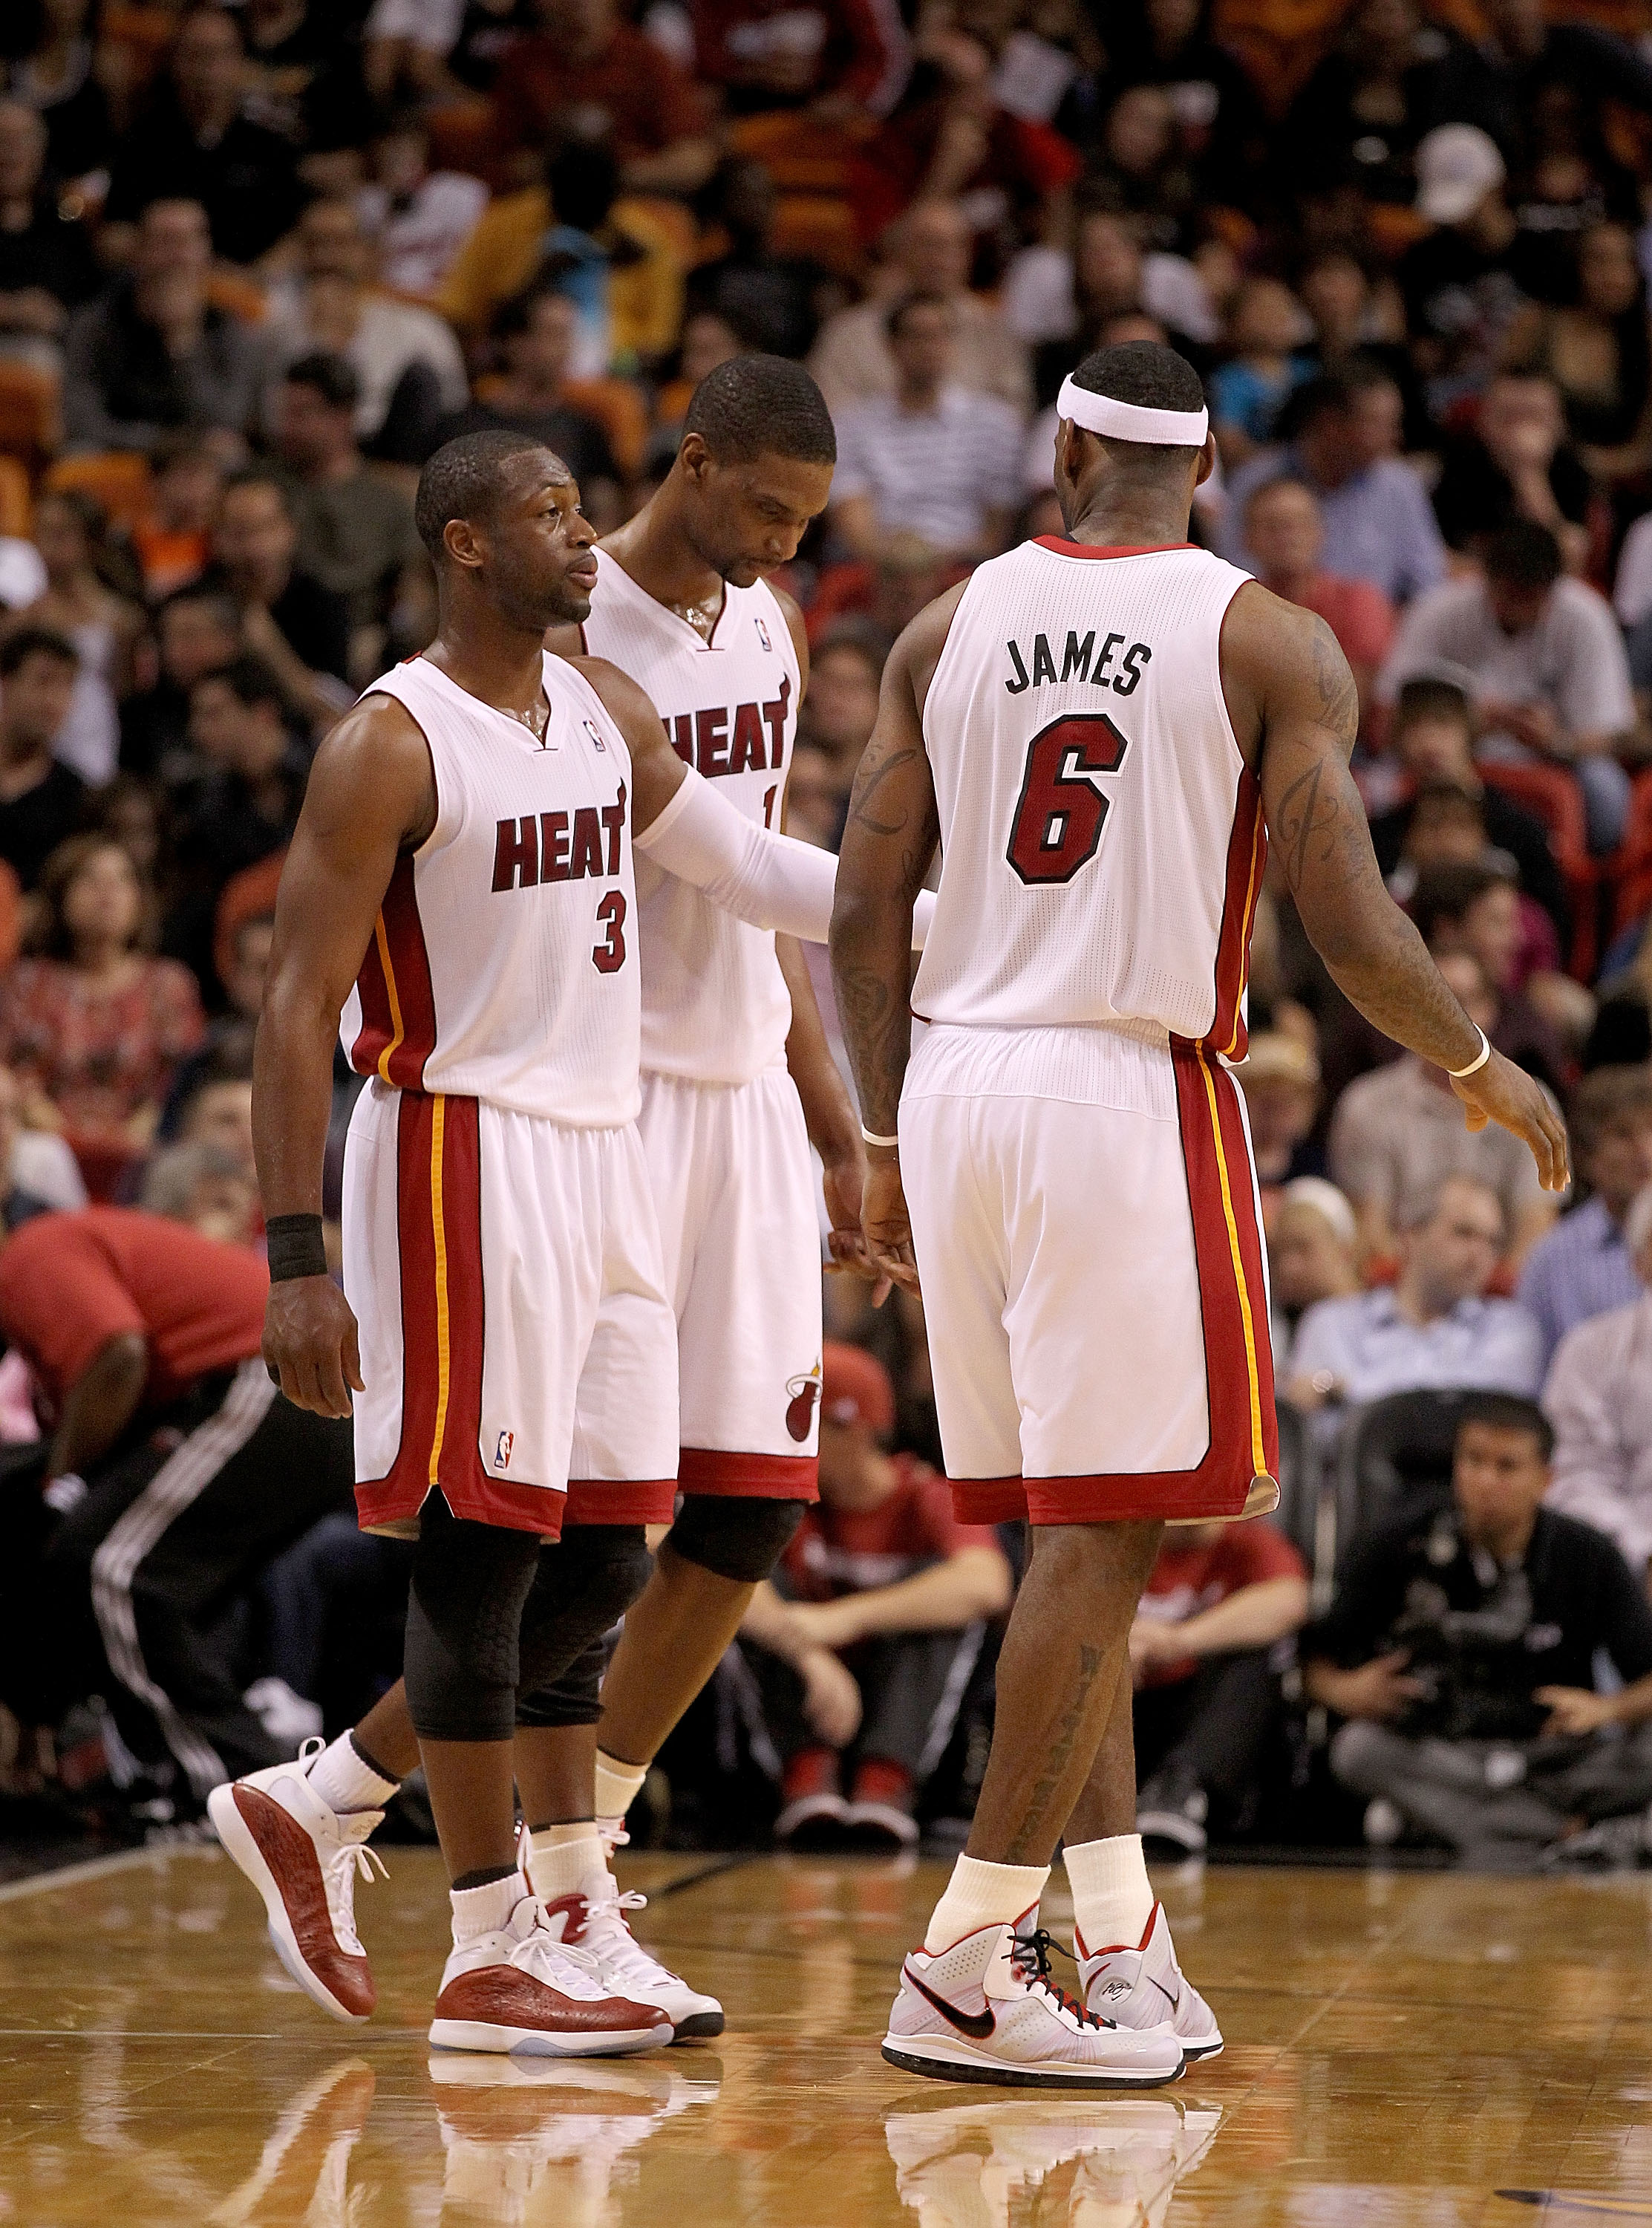 MIAMI, FL - FEBRUARY 25:  LeBron James #6, Dwyane Wade #3 and Chris Bosh #1 of the Miami Heat talk during a game against the Washington Wizards at American Airlines Arena on February 25, 2011 in Miami, Florida. NOTE TO USER: User expressly acknowledges an